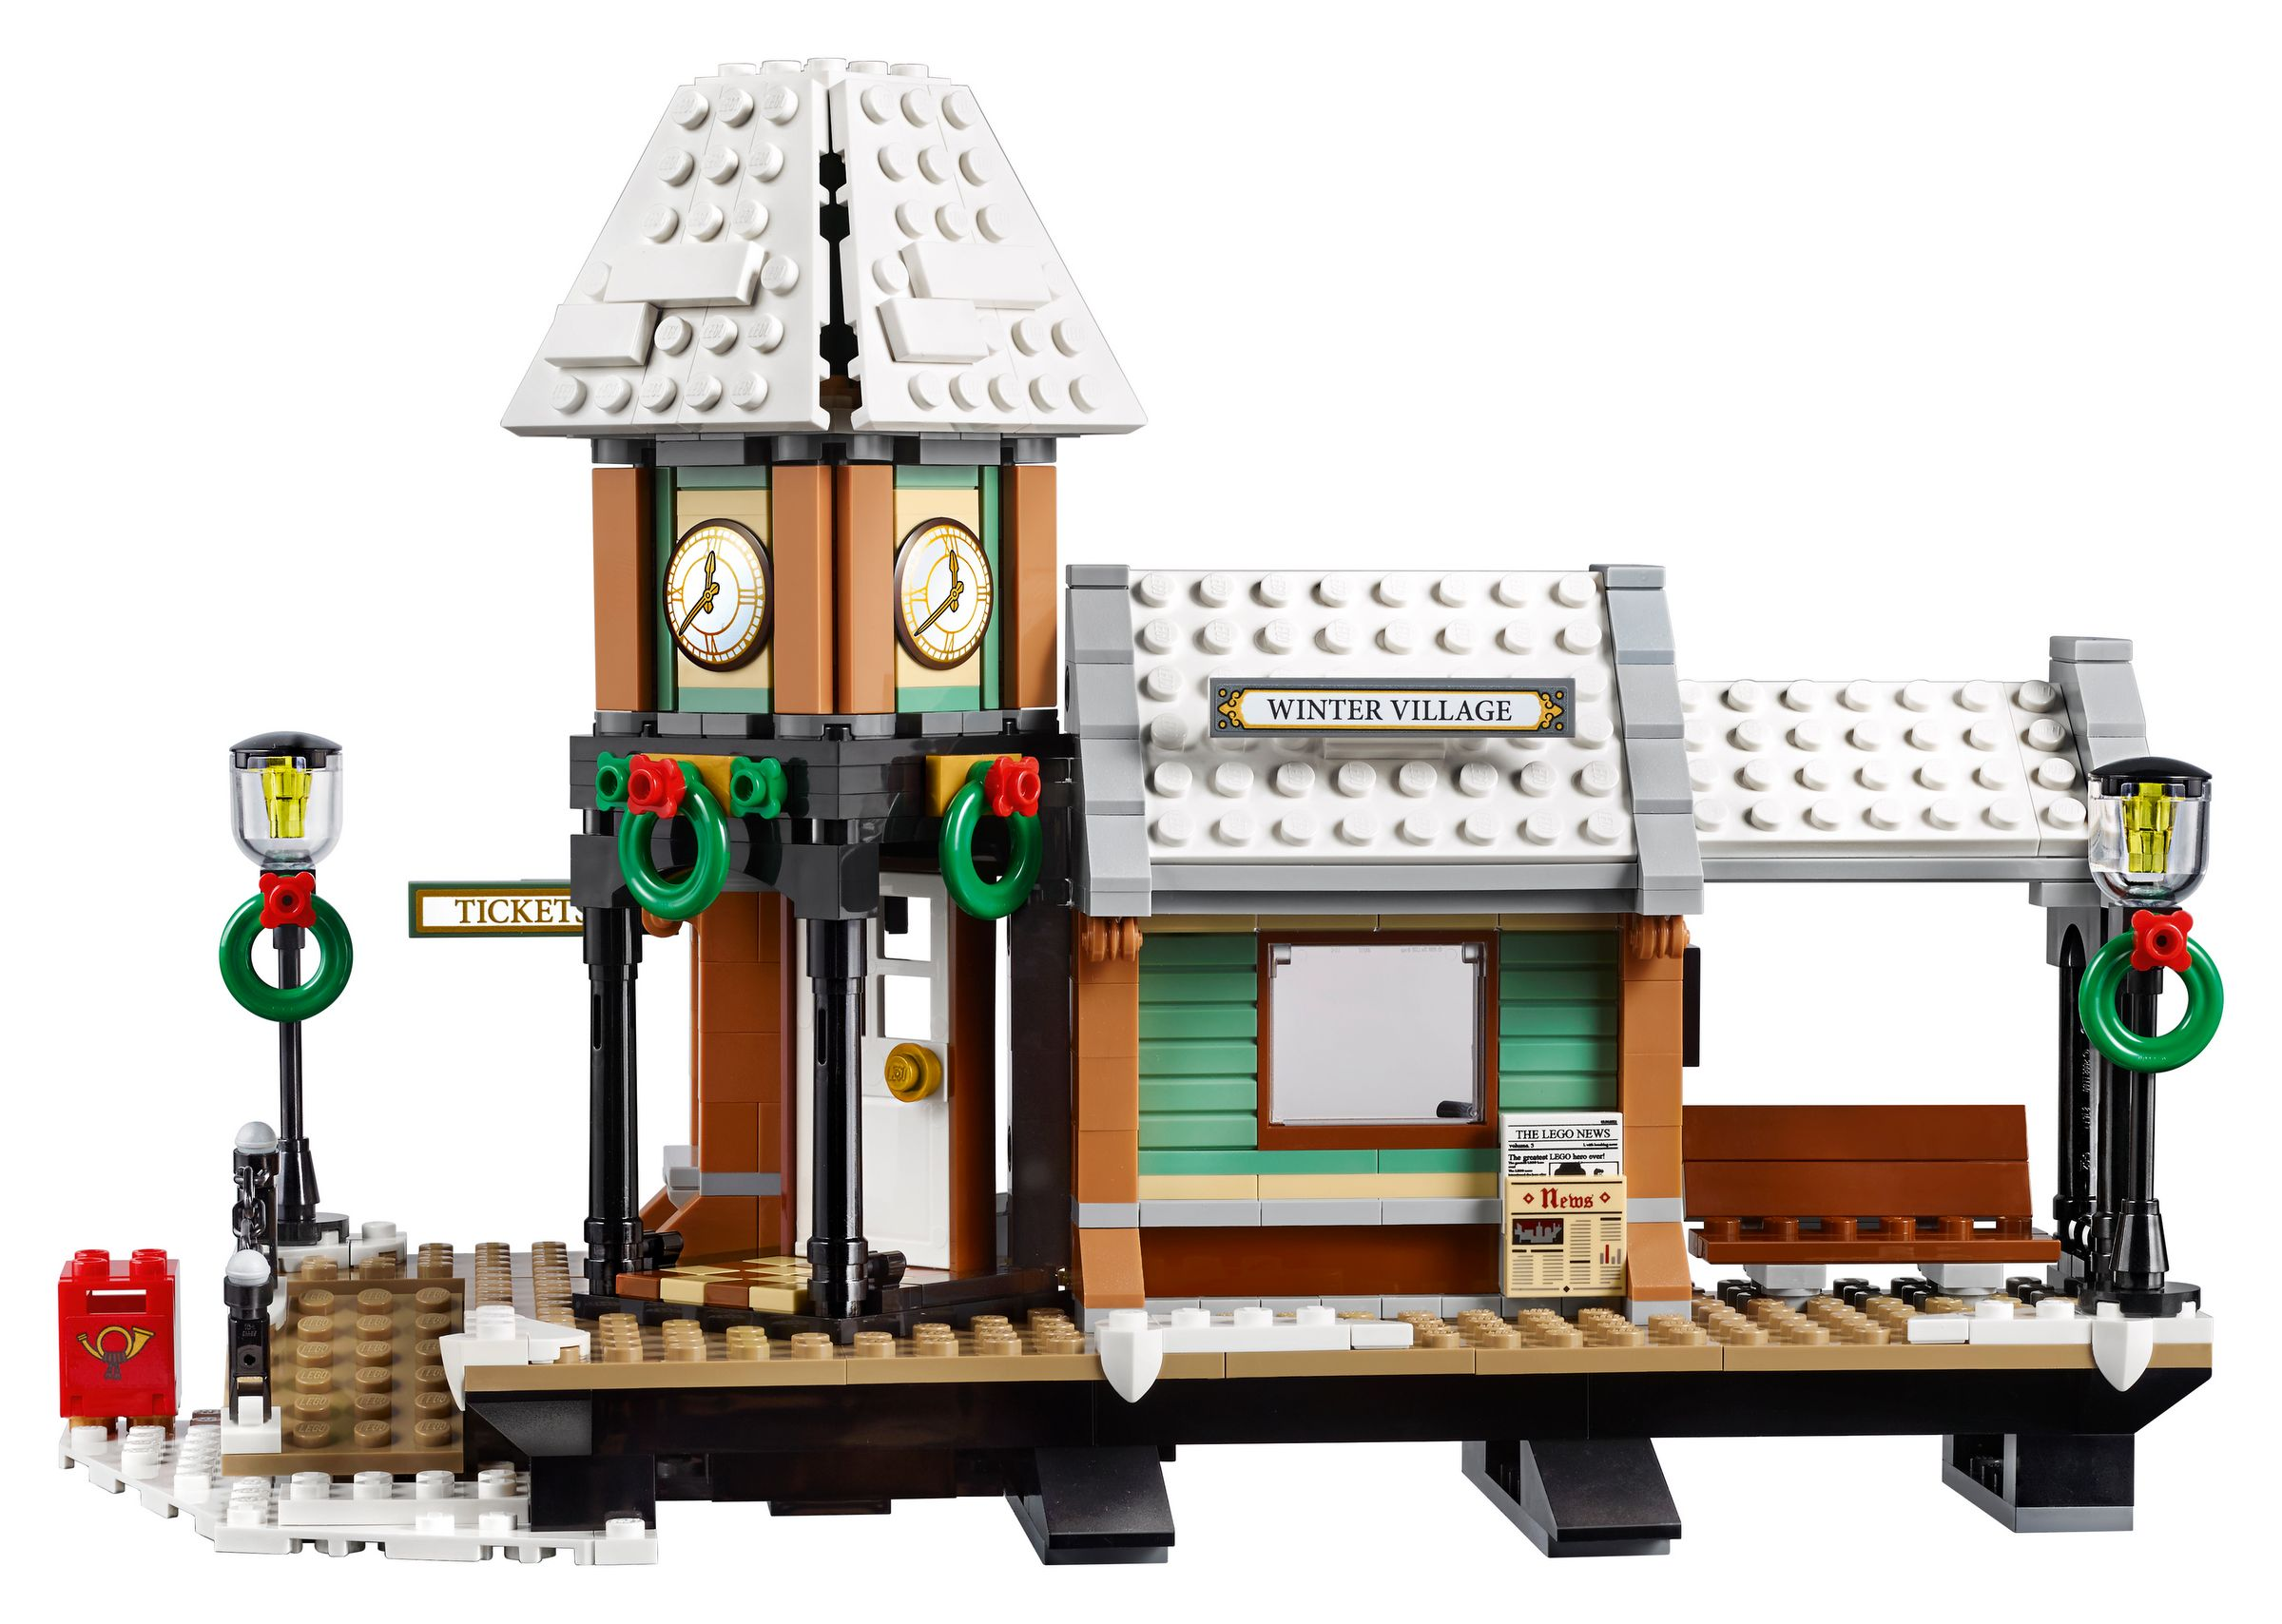 LEGO Advanced Models 10259 Winterlicher Bahnhof LEGO_10259_alt2.jpg